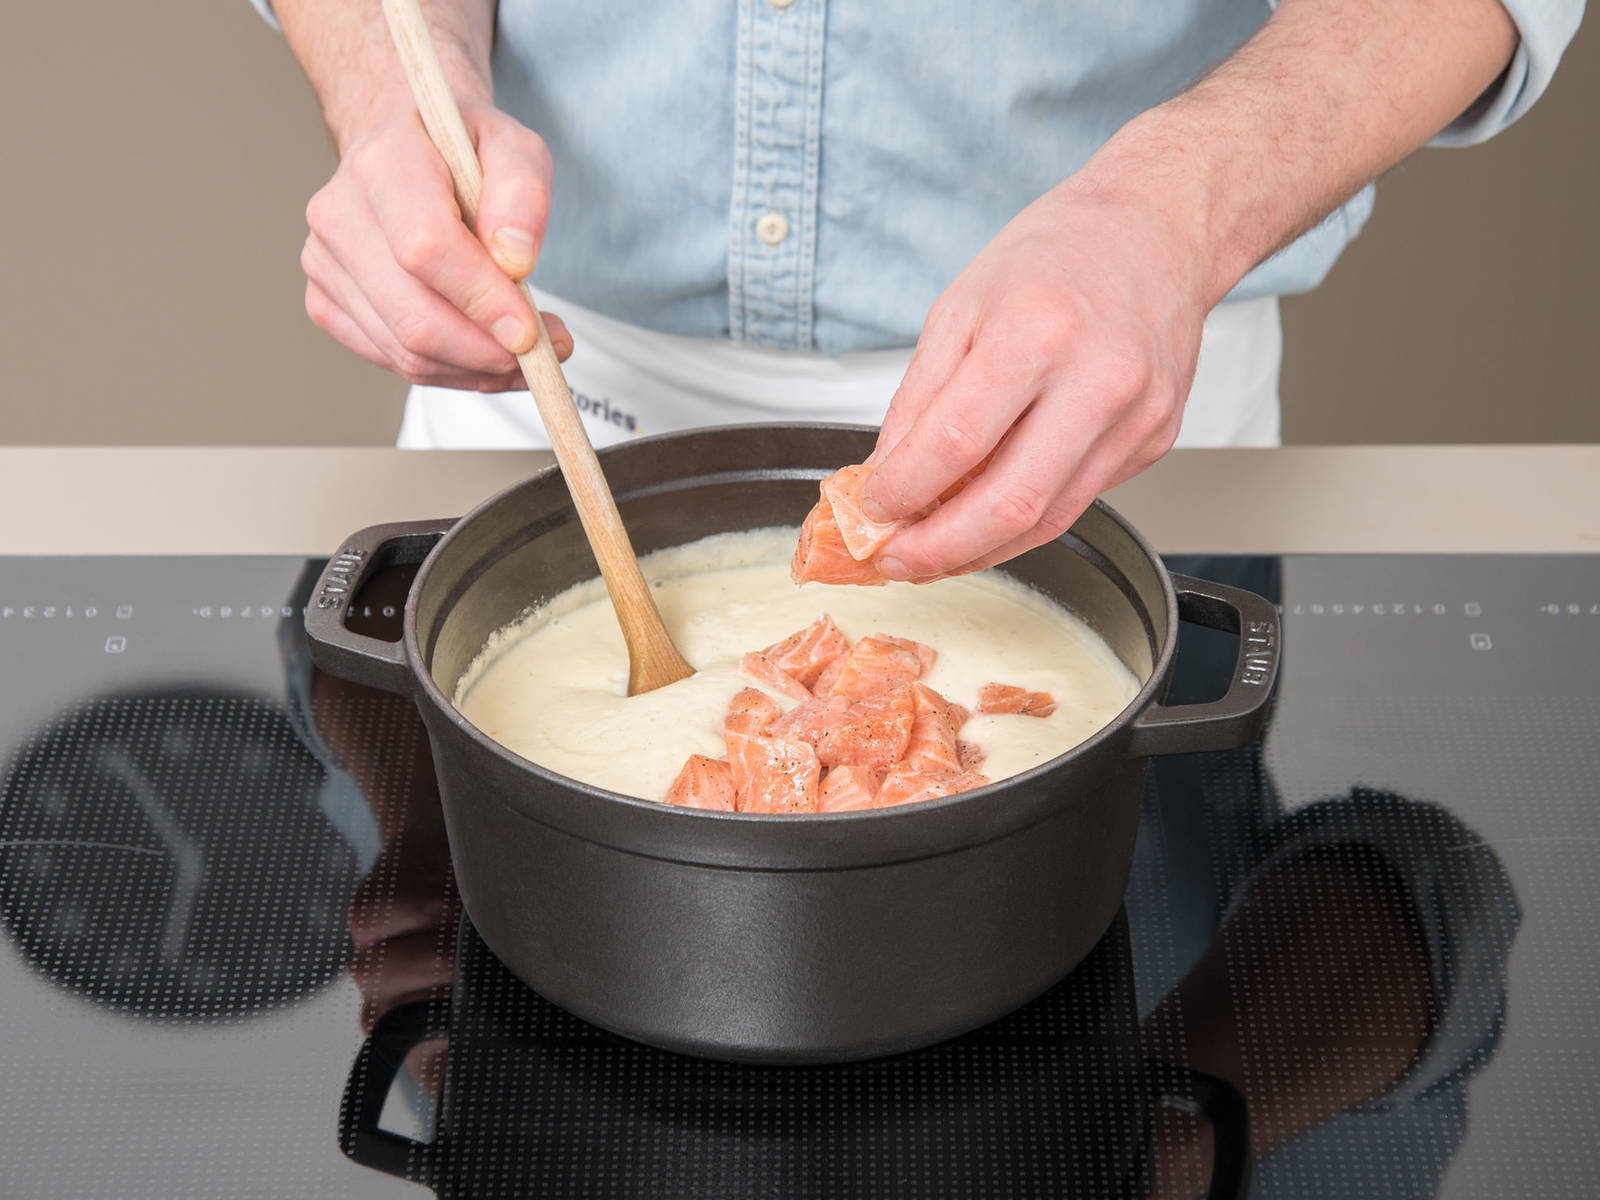 Add salmon fillet to the soup and slightly heat until salmon is cooked through. Serve soup with a slice of bread and garnish with chives, more horseradish, and pumpkin seed oil.